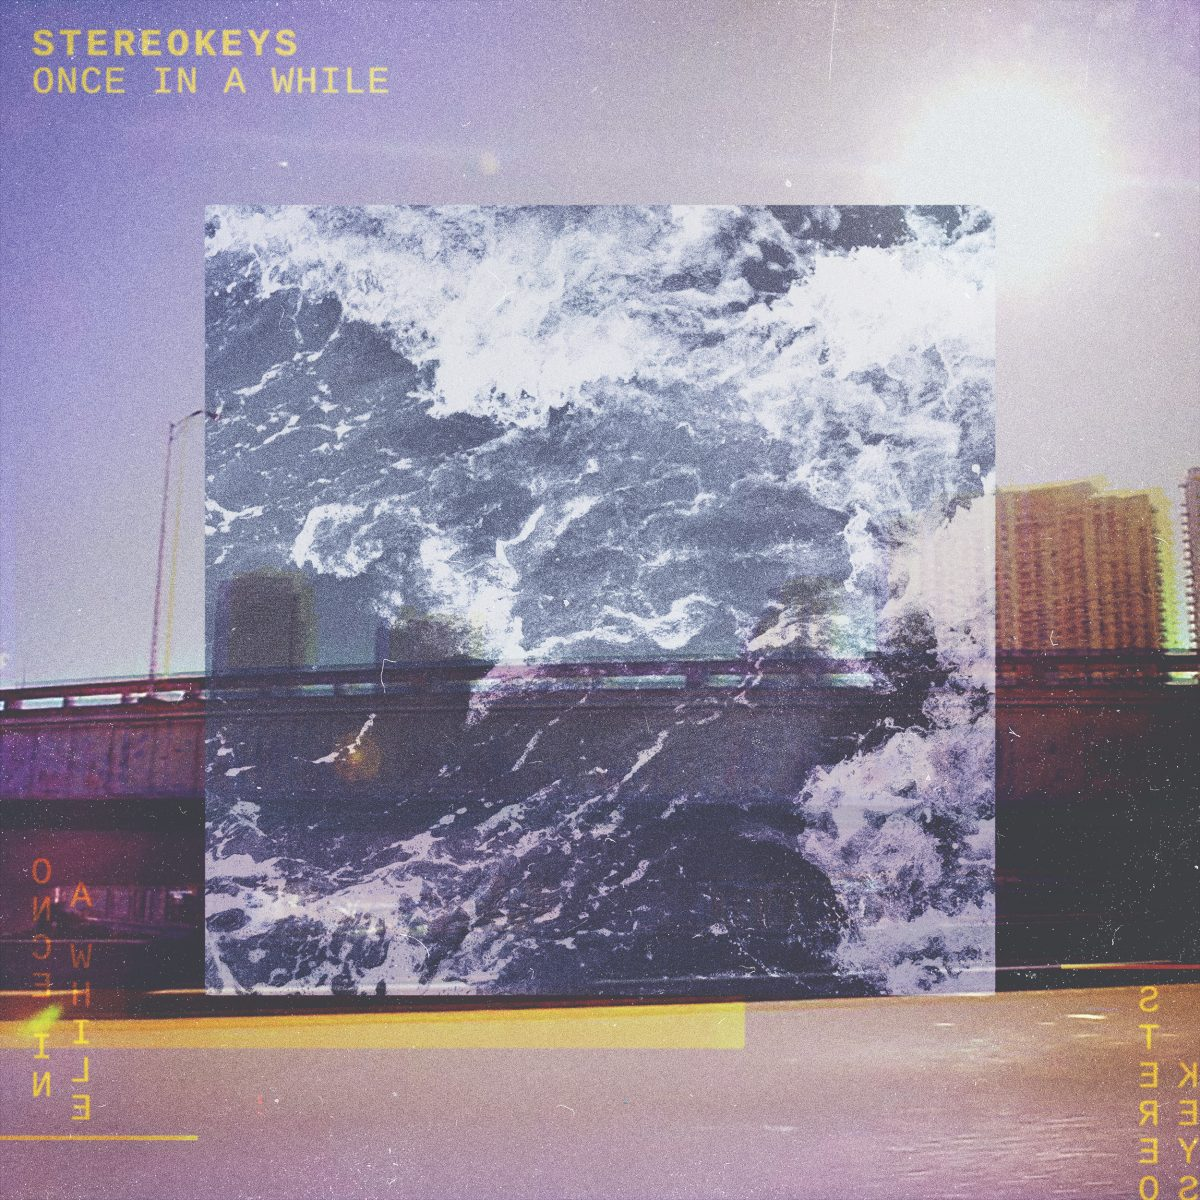 stereokeys-once-in-a-while-video-premiere